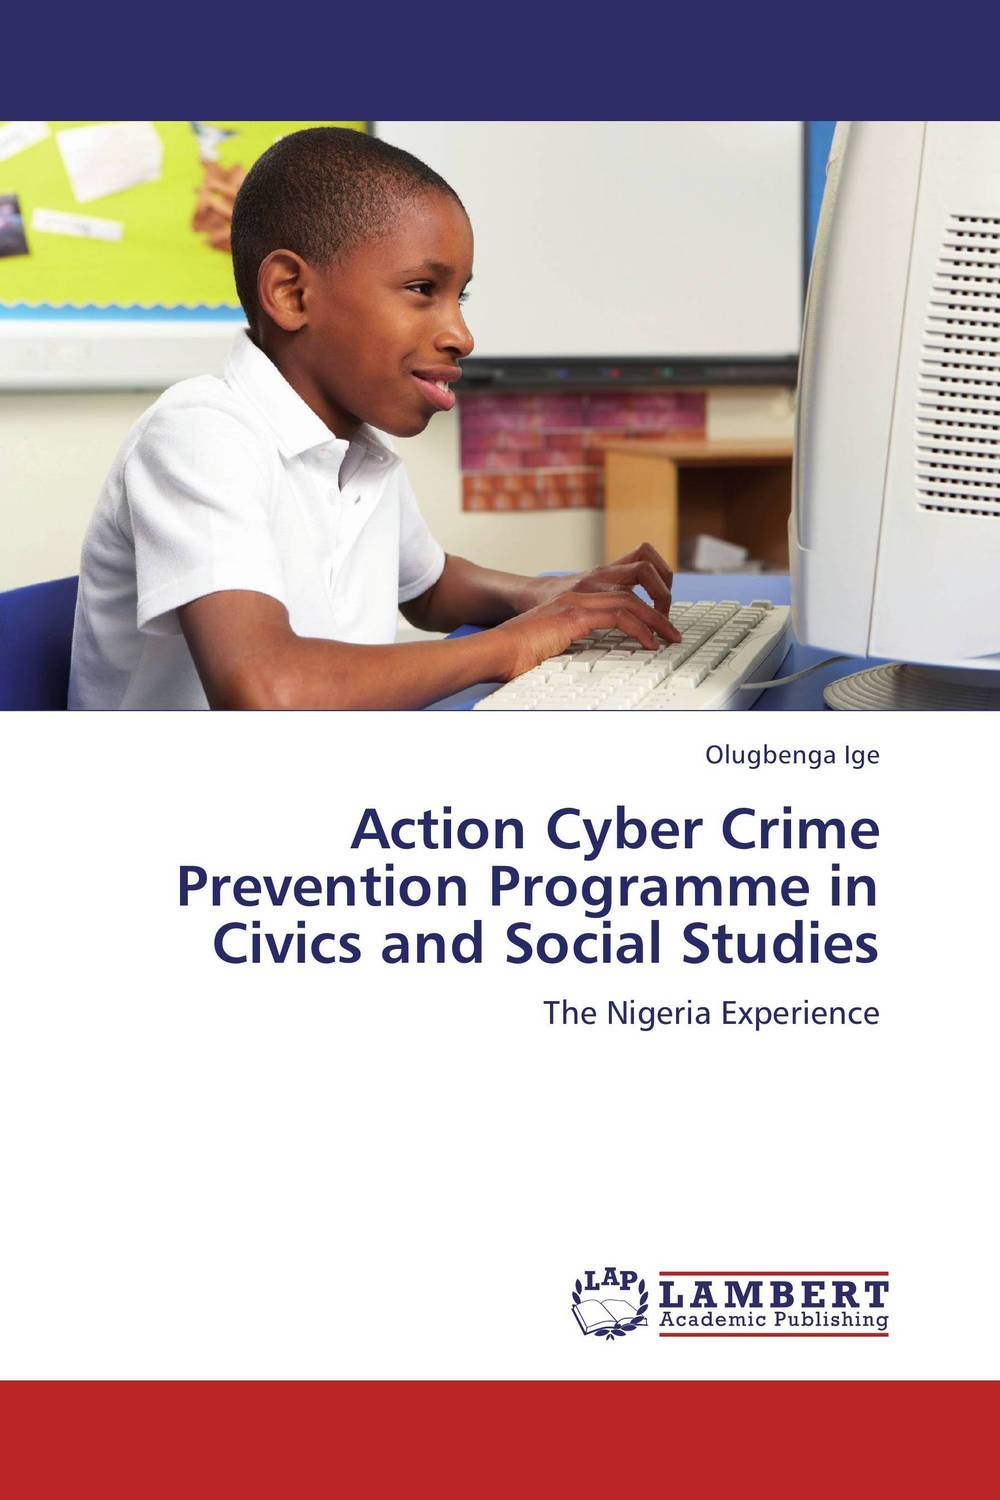 Action Cyber Crime Prevention Programme in Civics and Social Studies social networking mindset and education